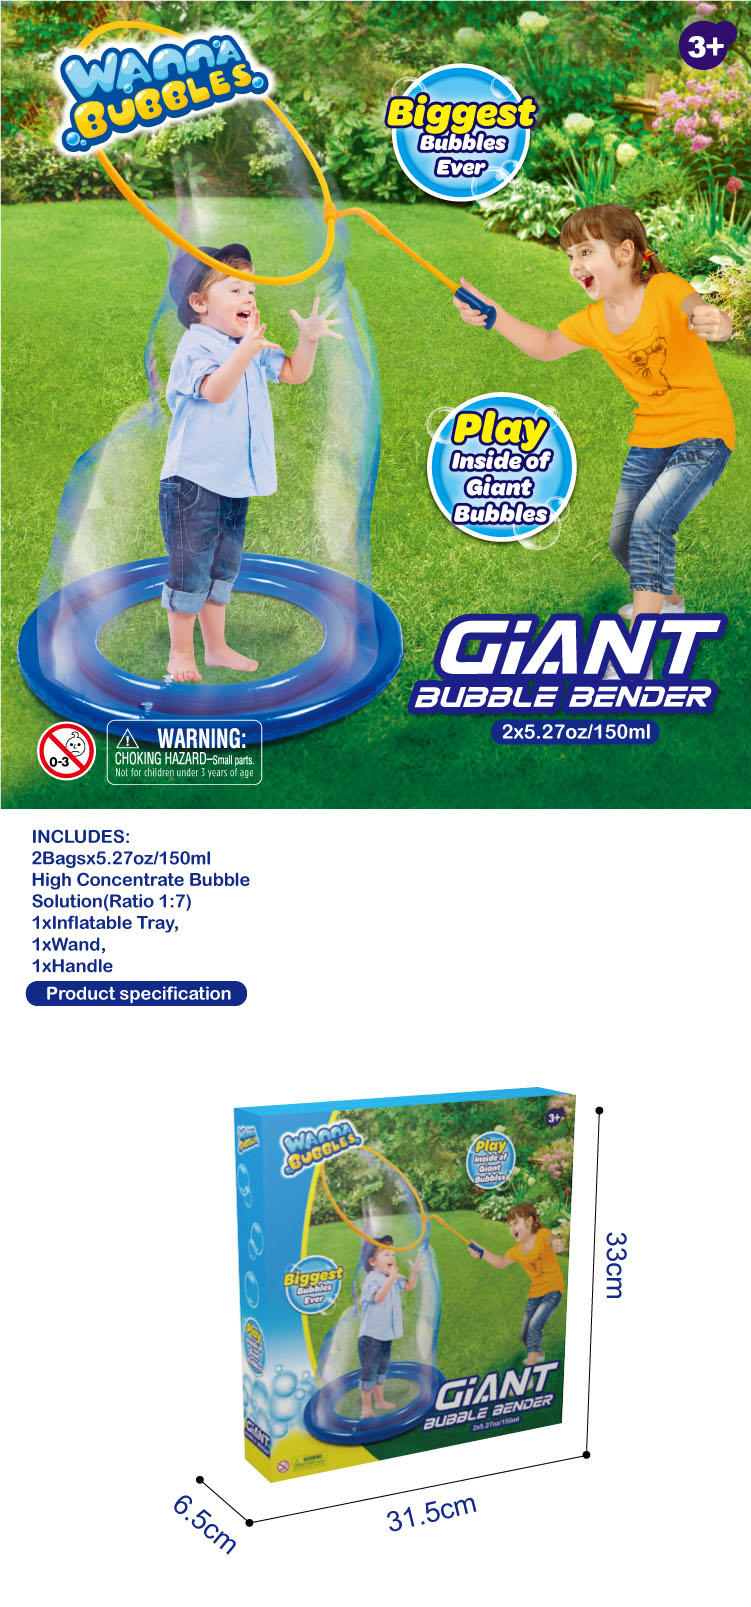 GIANT BUBBLE BENDER GROTE BUBBLE WAND